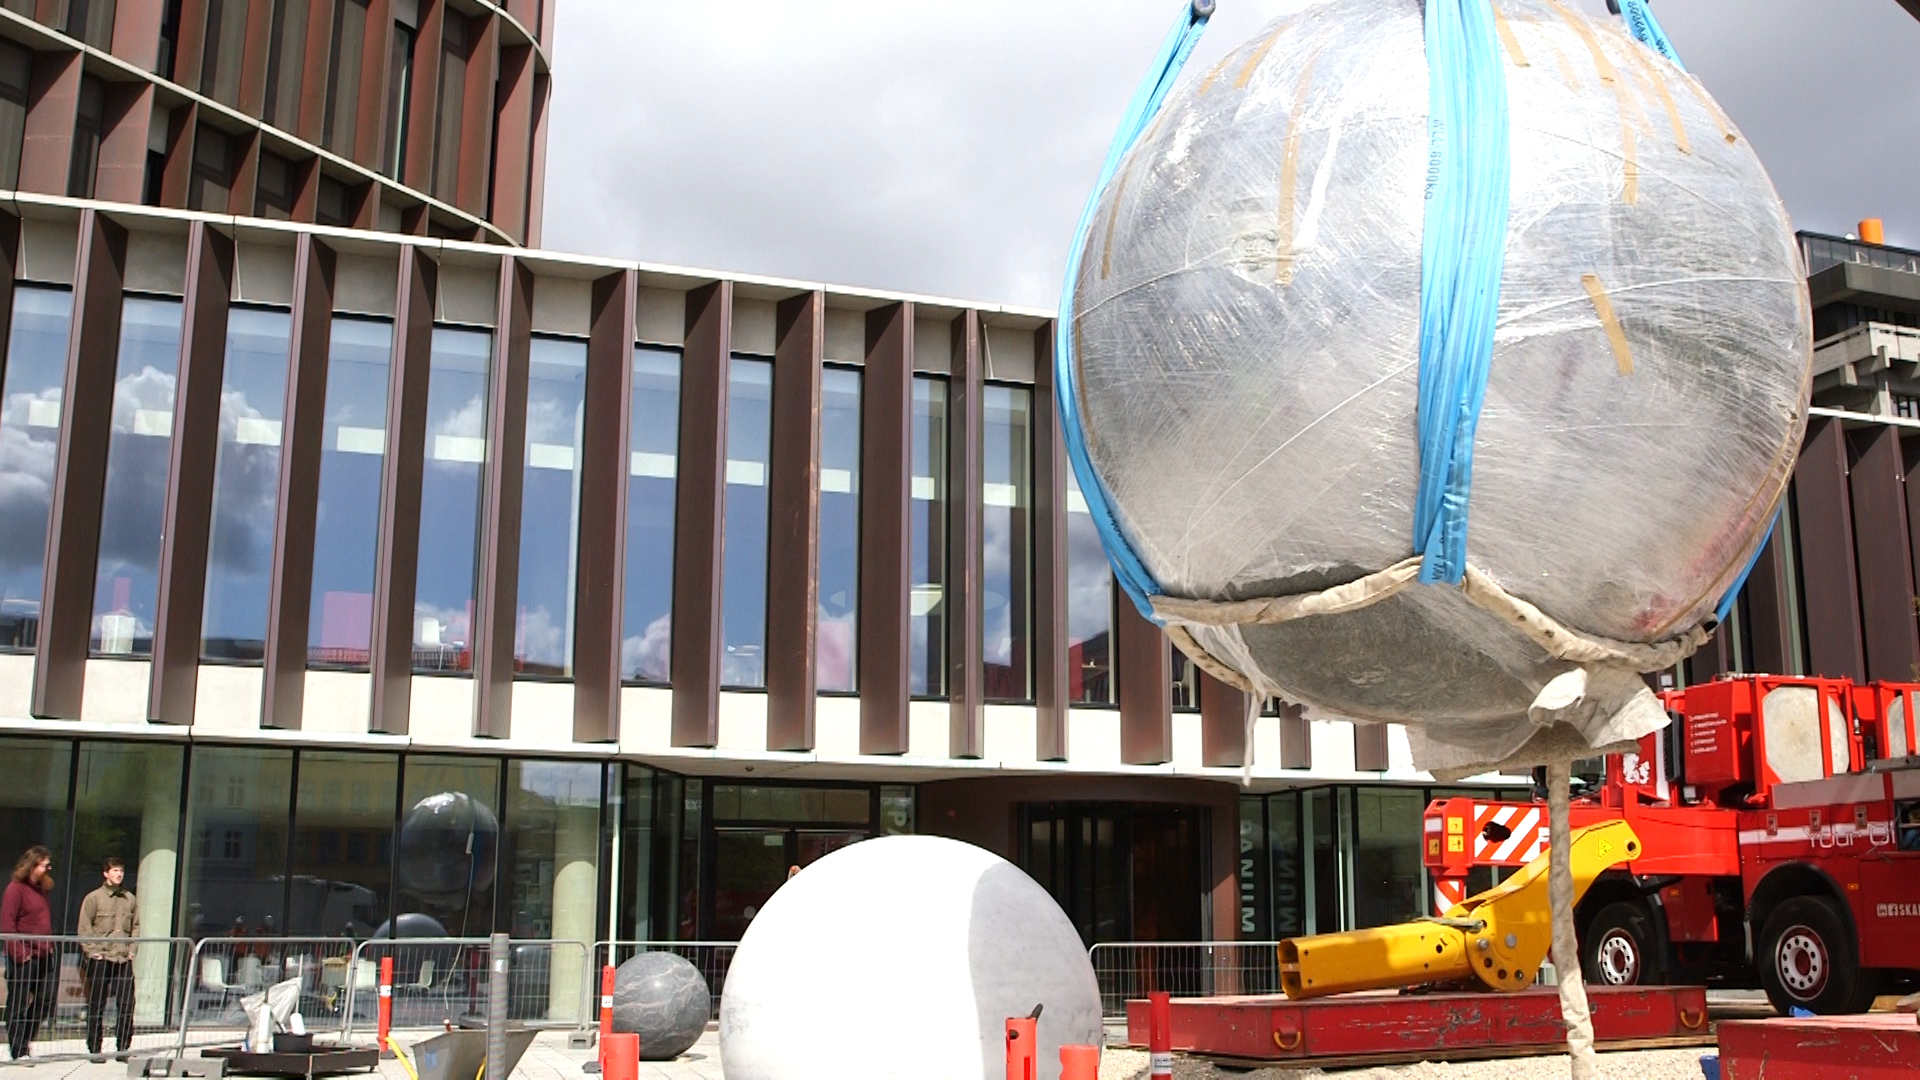 One of the globes arrives at the Maersk Tower